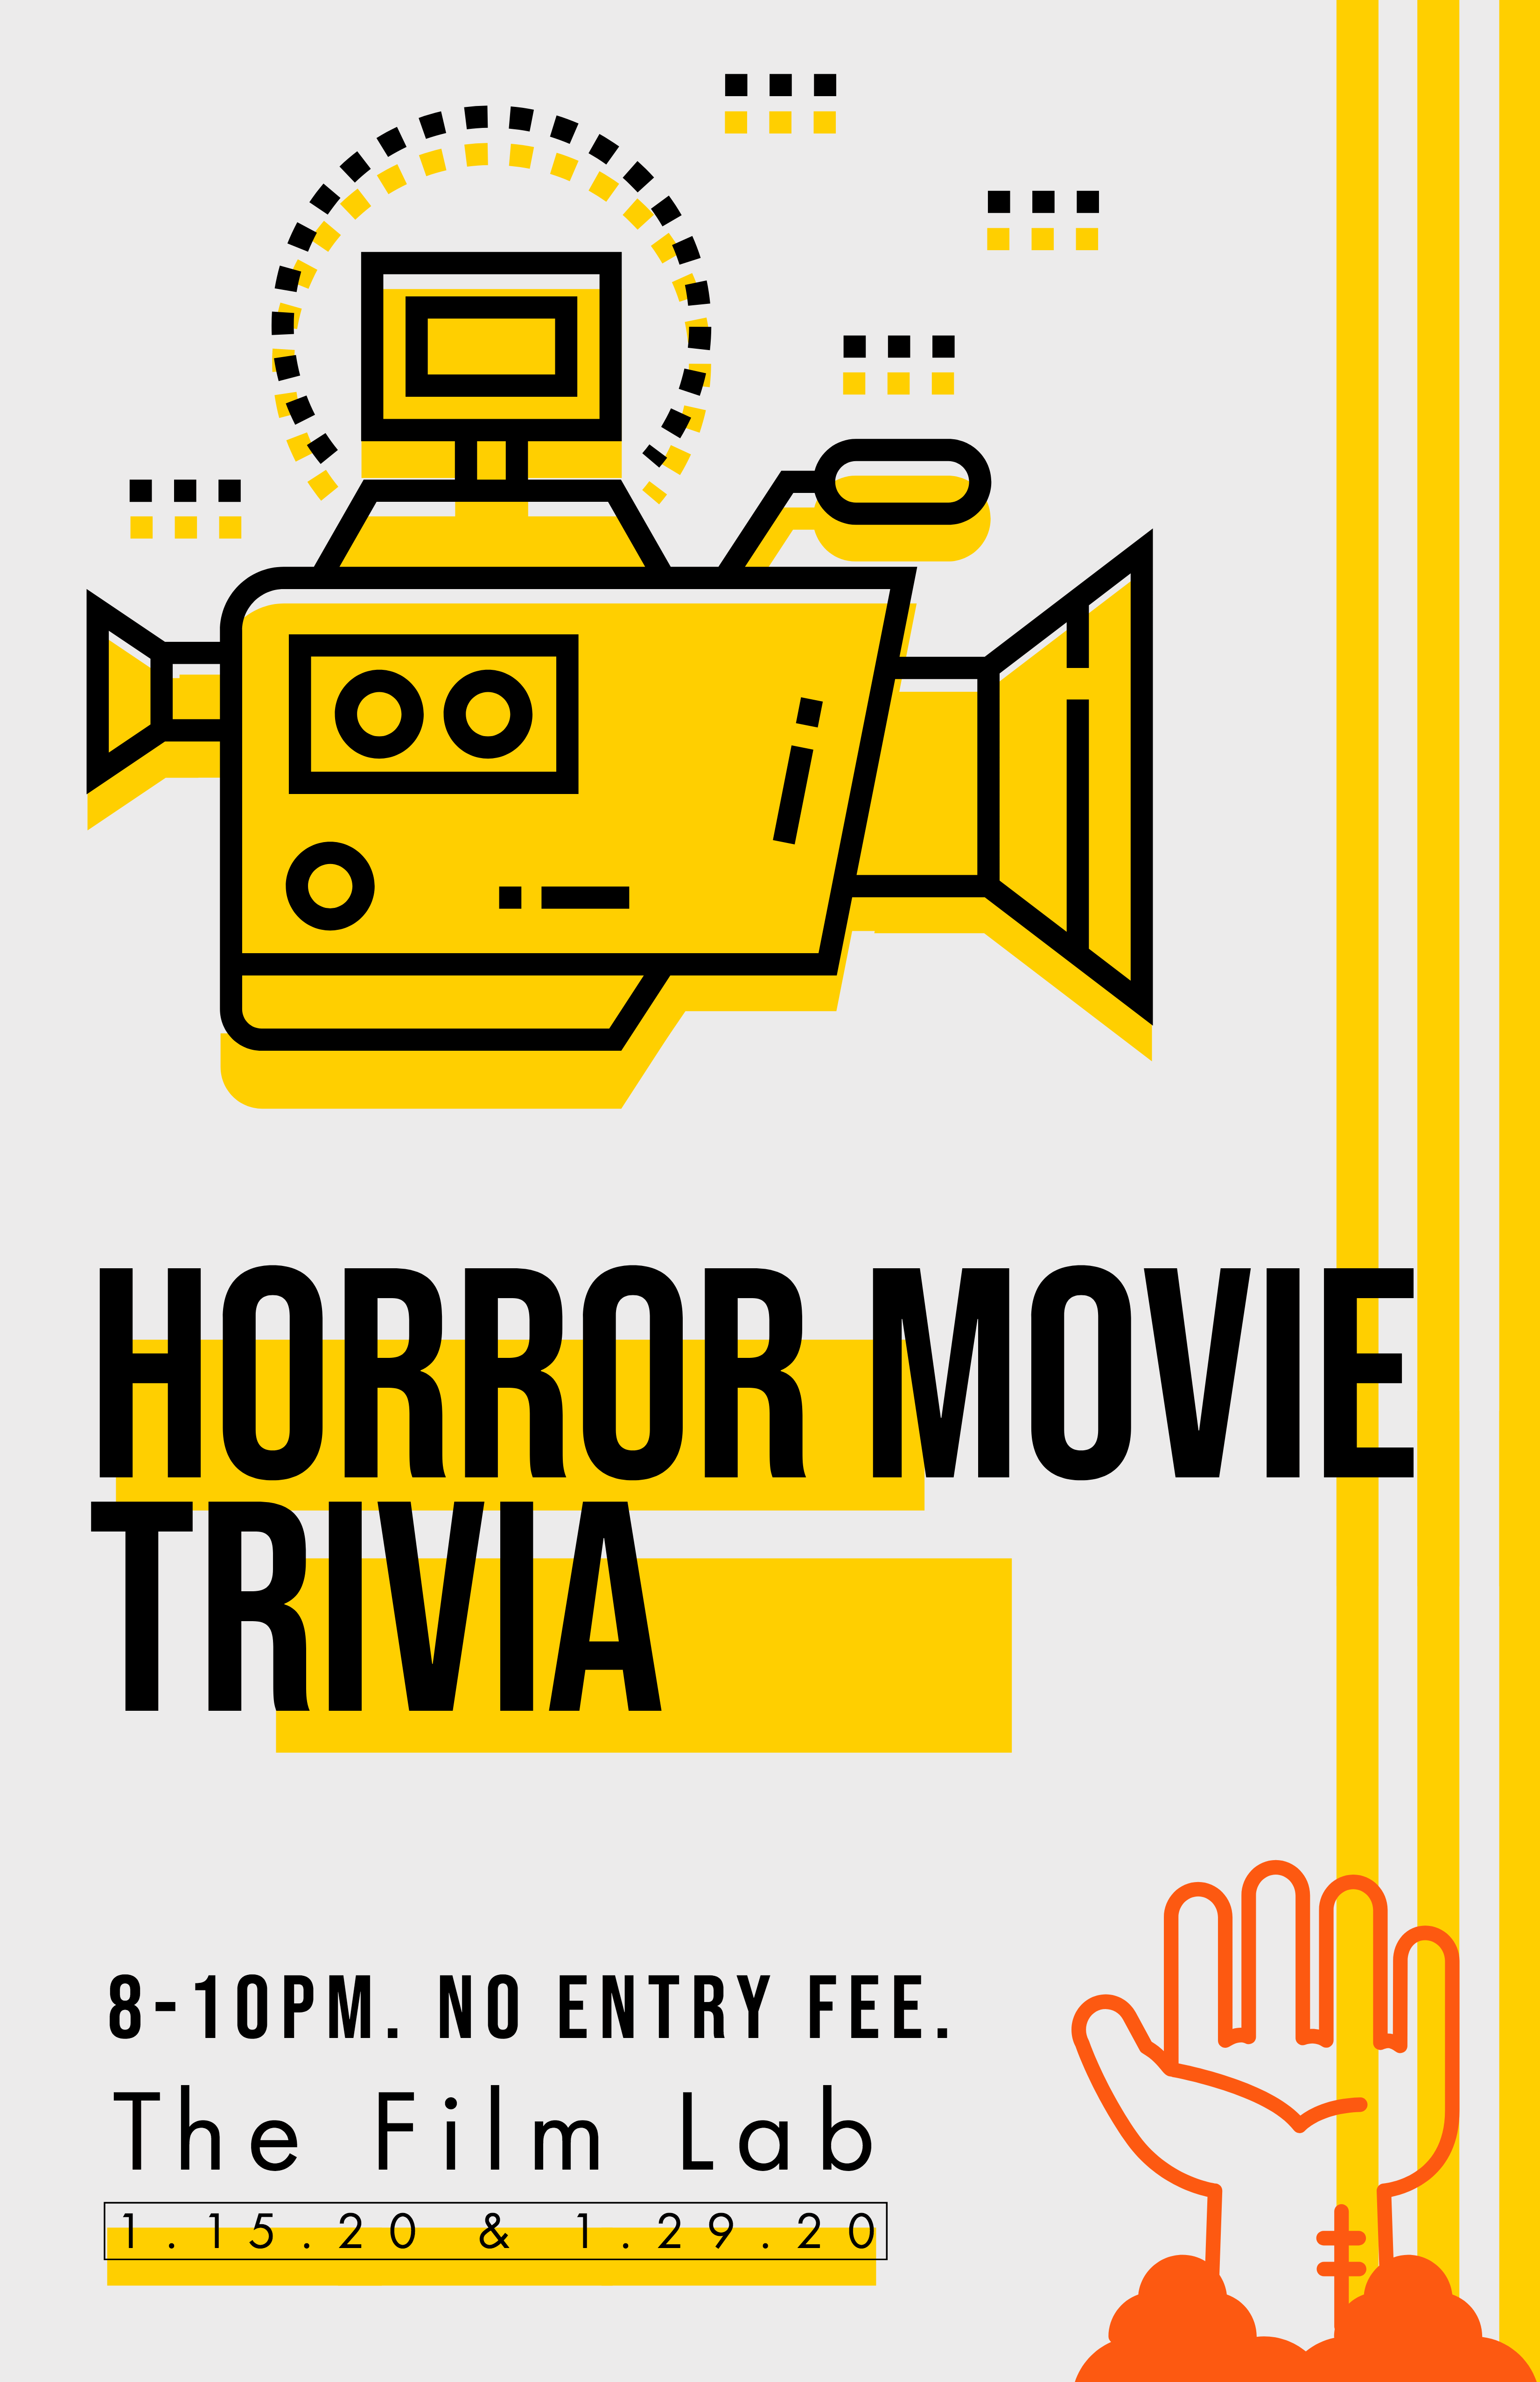 Poster for Horror Movie Trivia